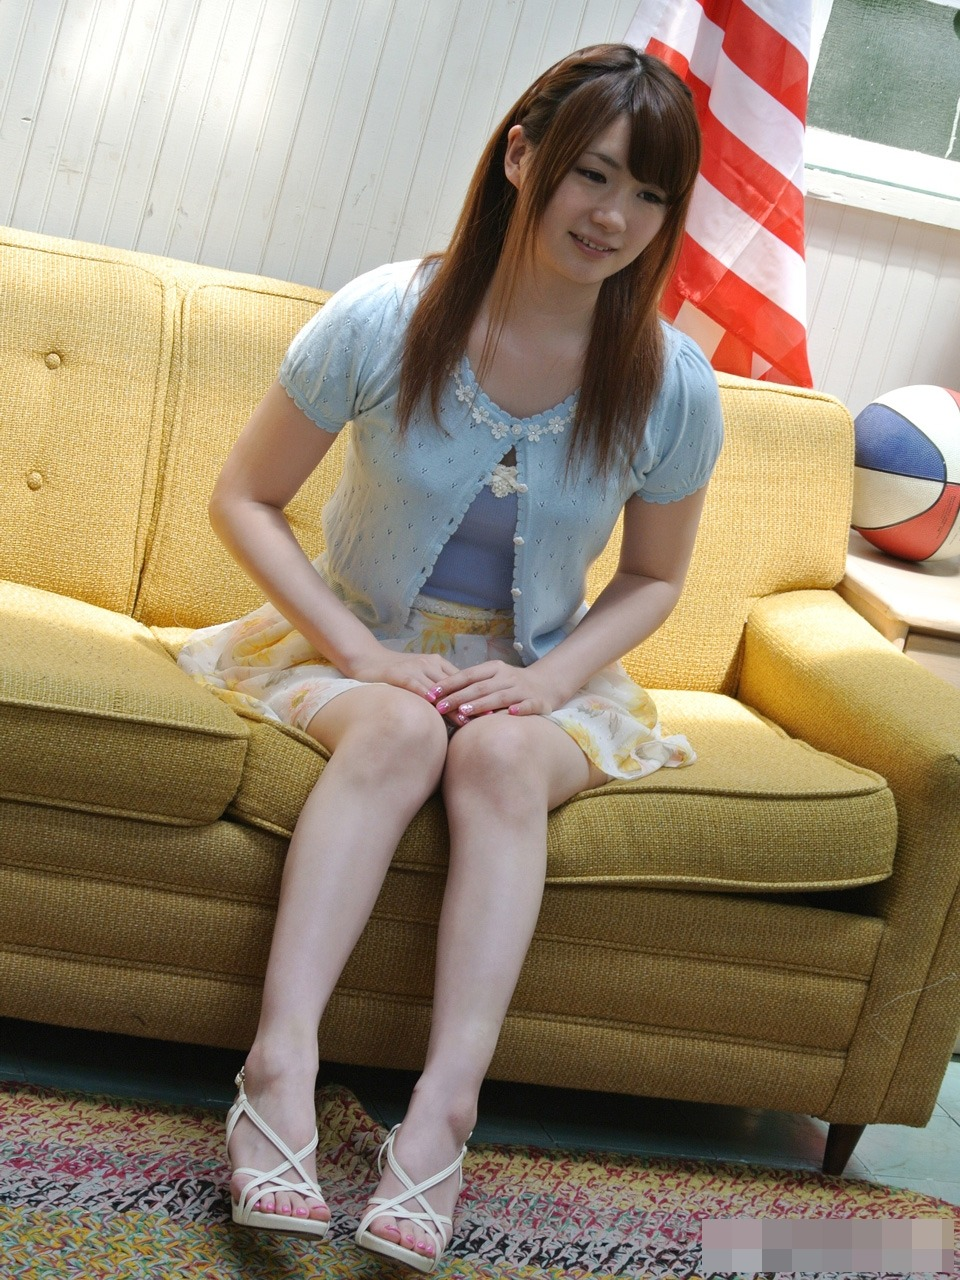 Sexy Collection Of Images Blog :: 니시카와 유이(Yui Nishikawa ...  Sexy Collection...